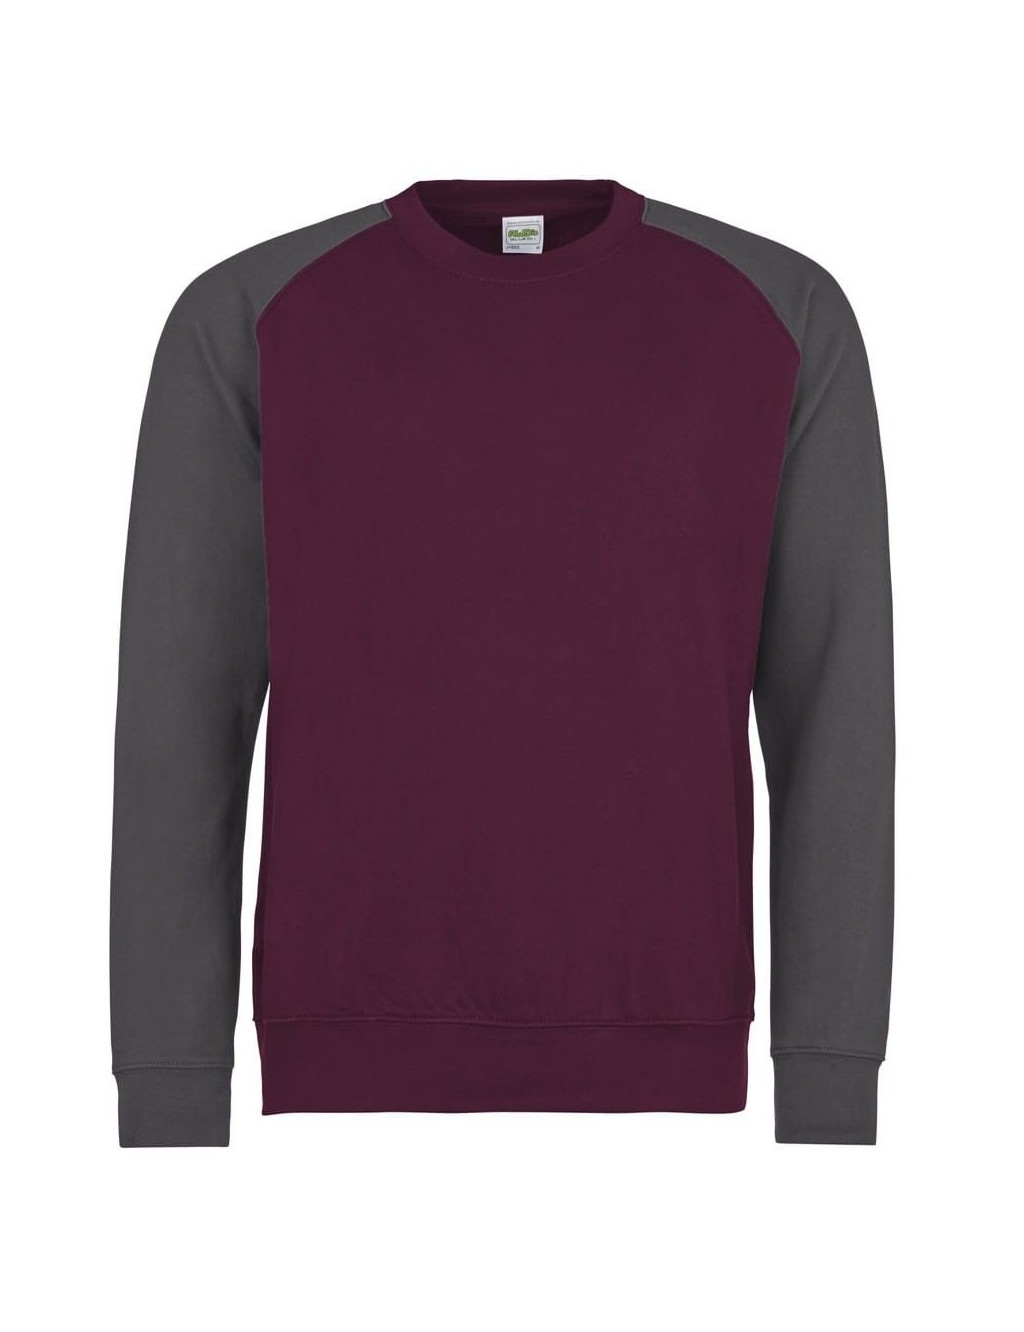 Round neck sweater with contrasting sleeves